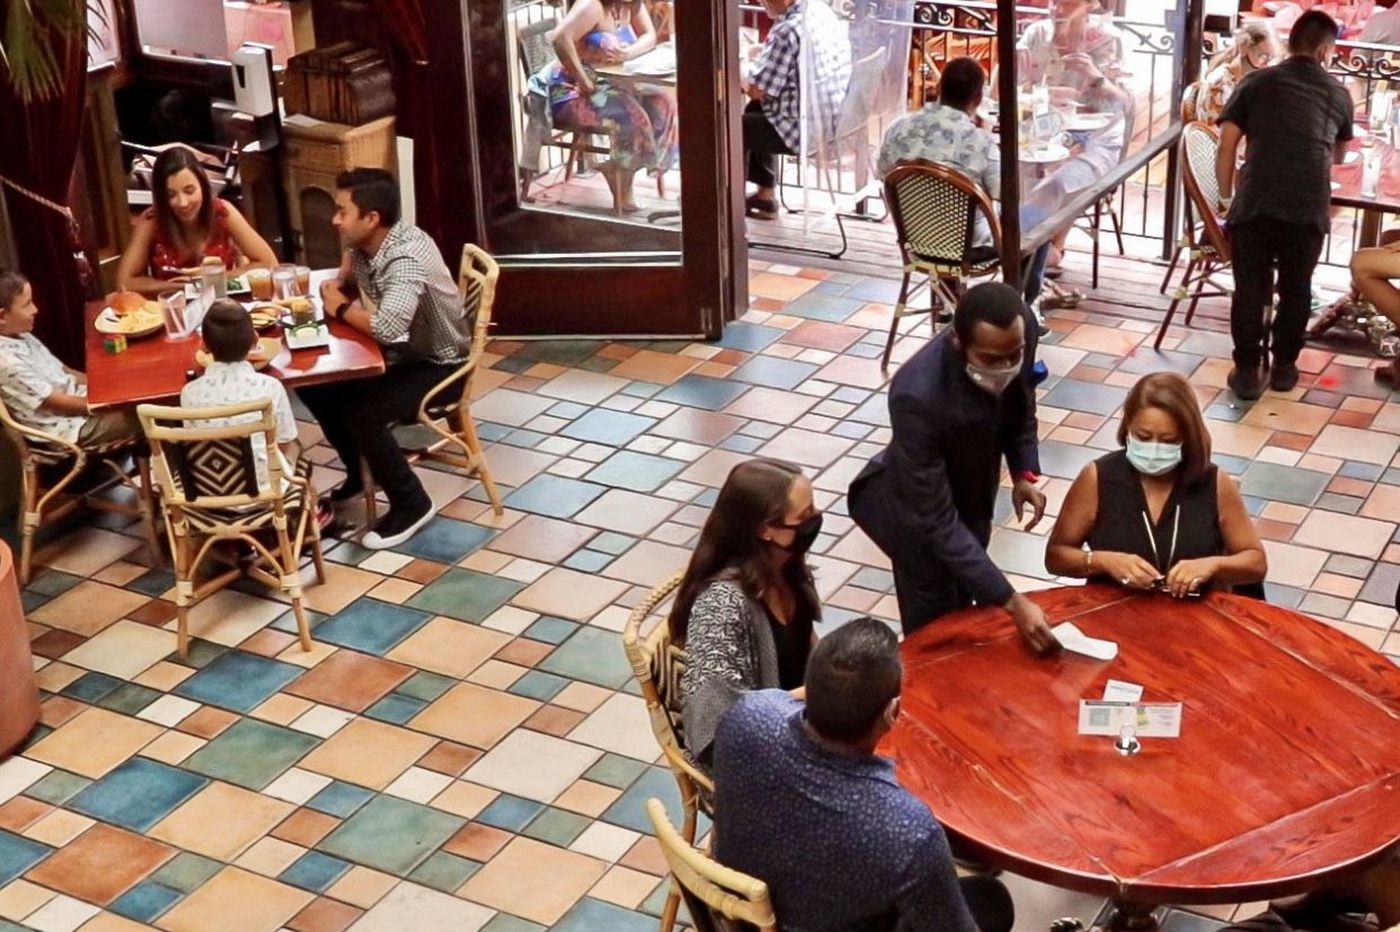 Indoor dining is back at Philly-area restaurants, and some customers seem to be eating it up